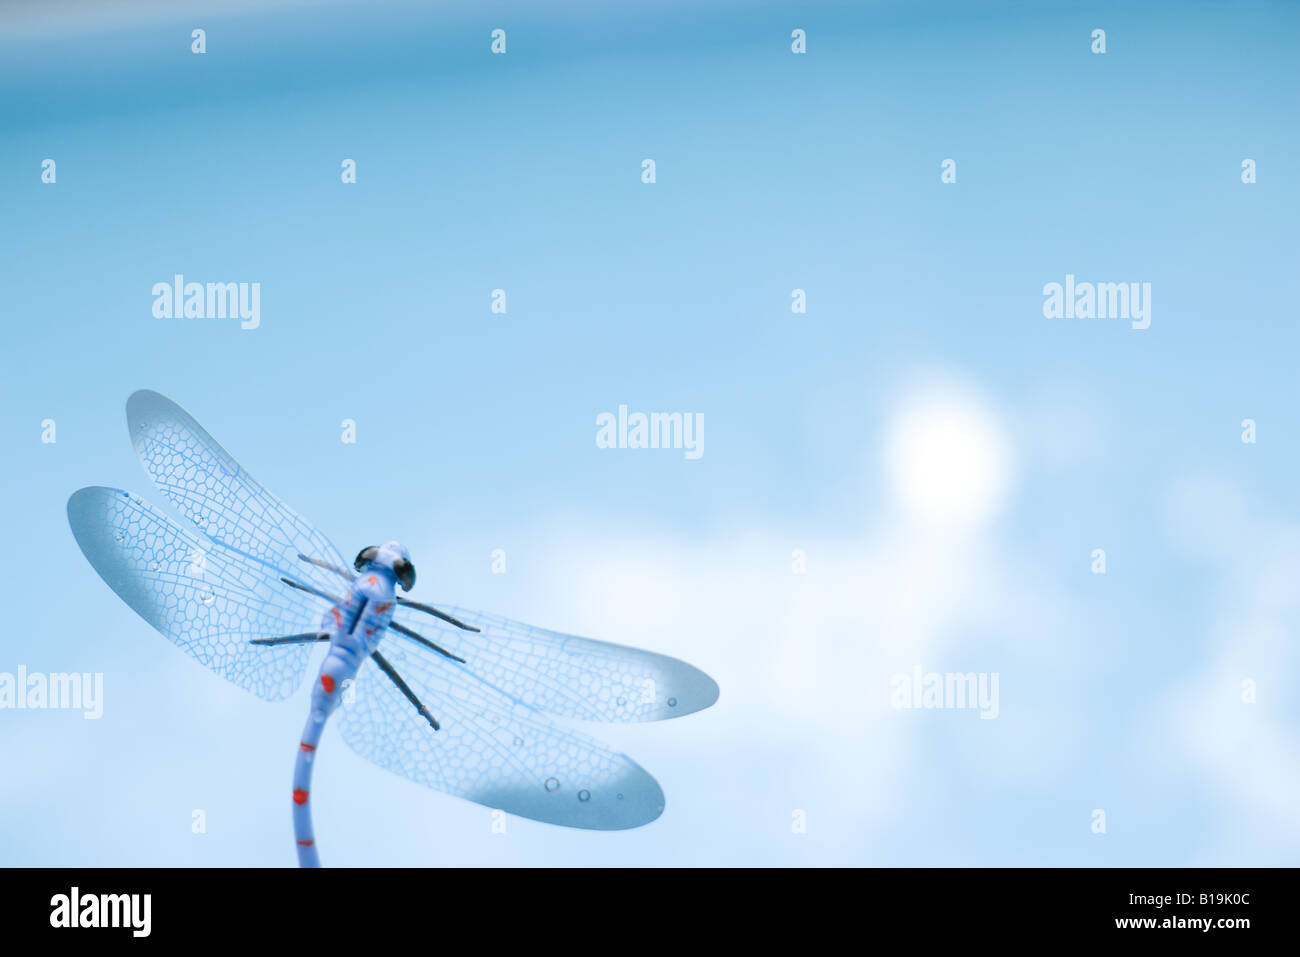 Dragonfly, close-up - Stock Image